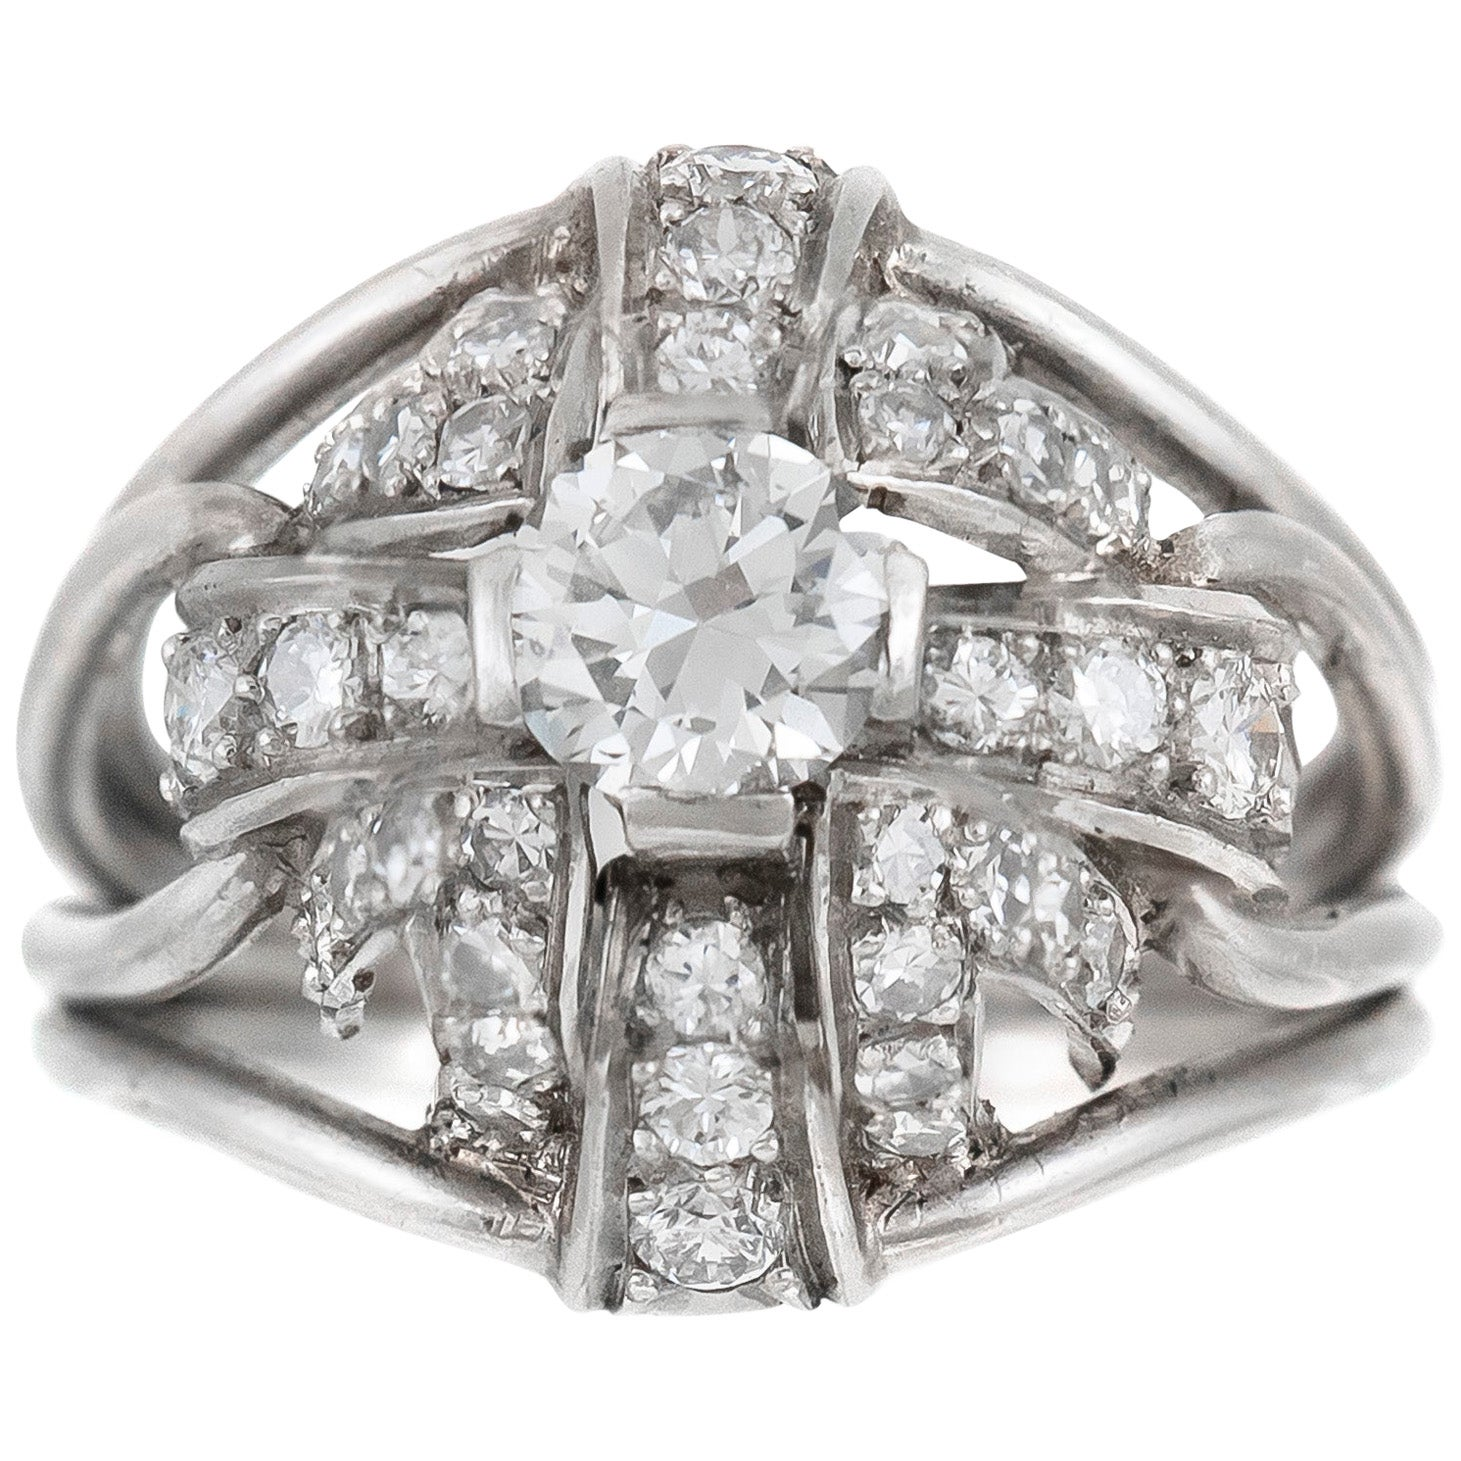 1940s 2.50 Round Diamonds with Platinum Ring